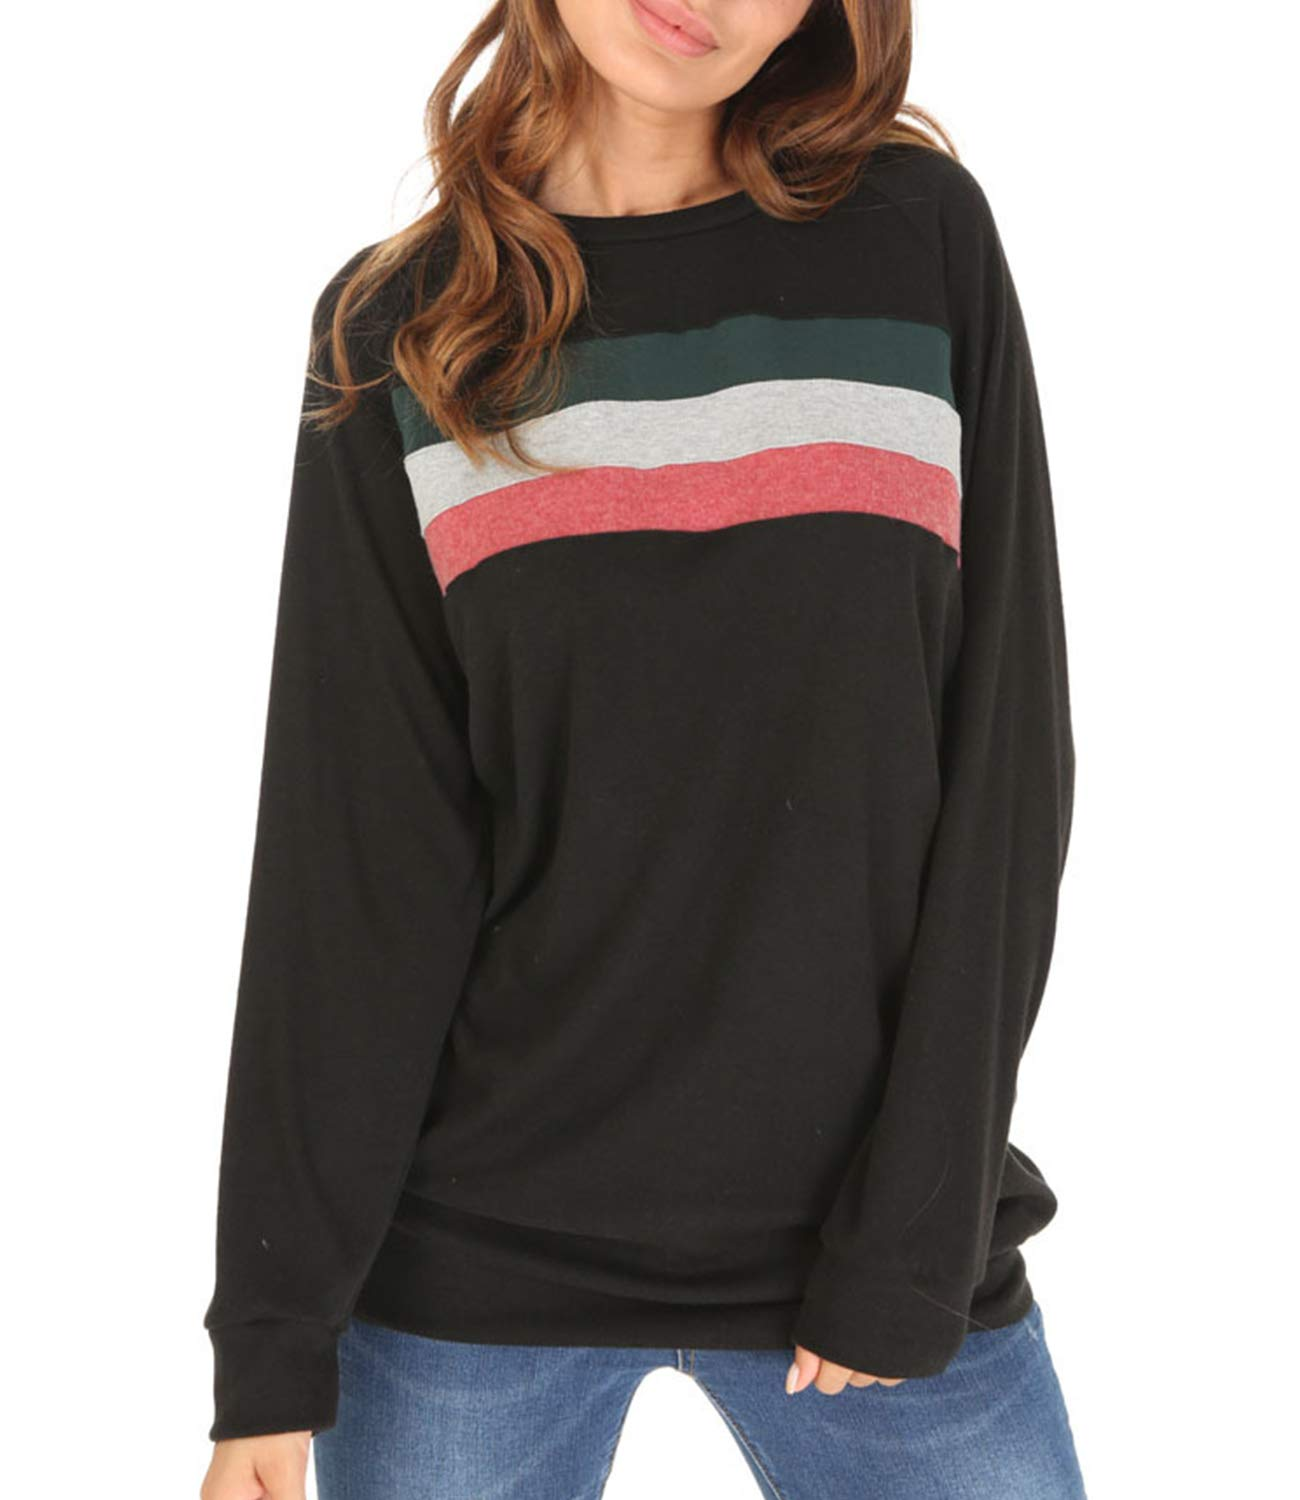 Women's Color Block Long Sleeve Casual Shirt Lightweight Tunic Sweatshirt Tops (Small, Black-03)